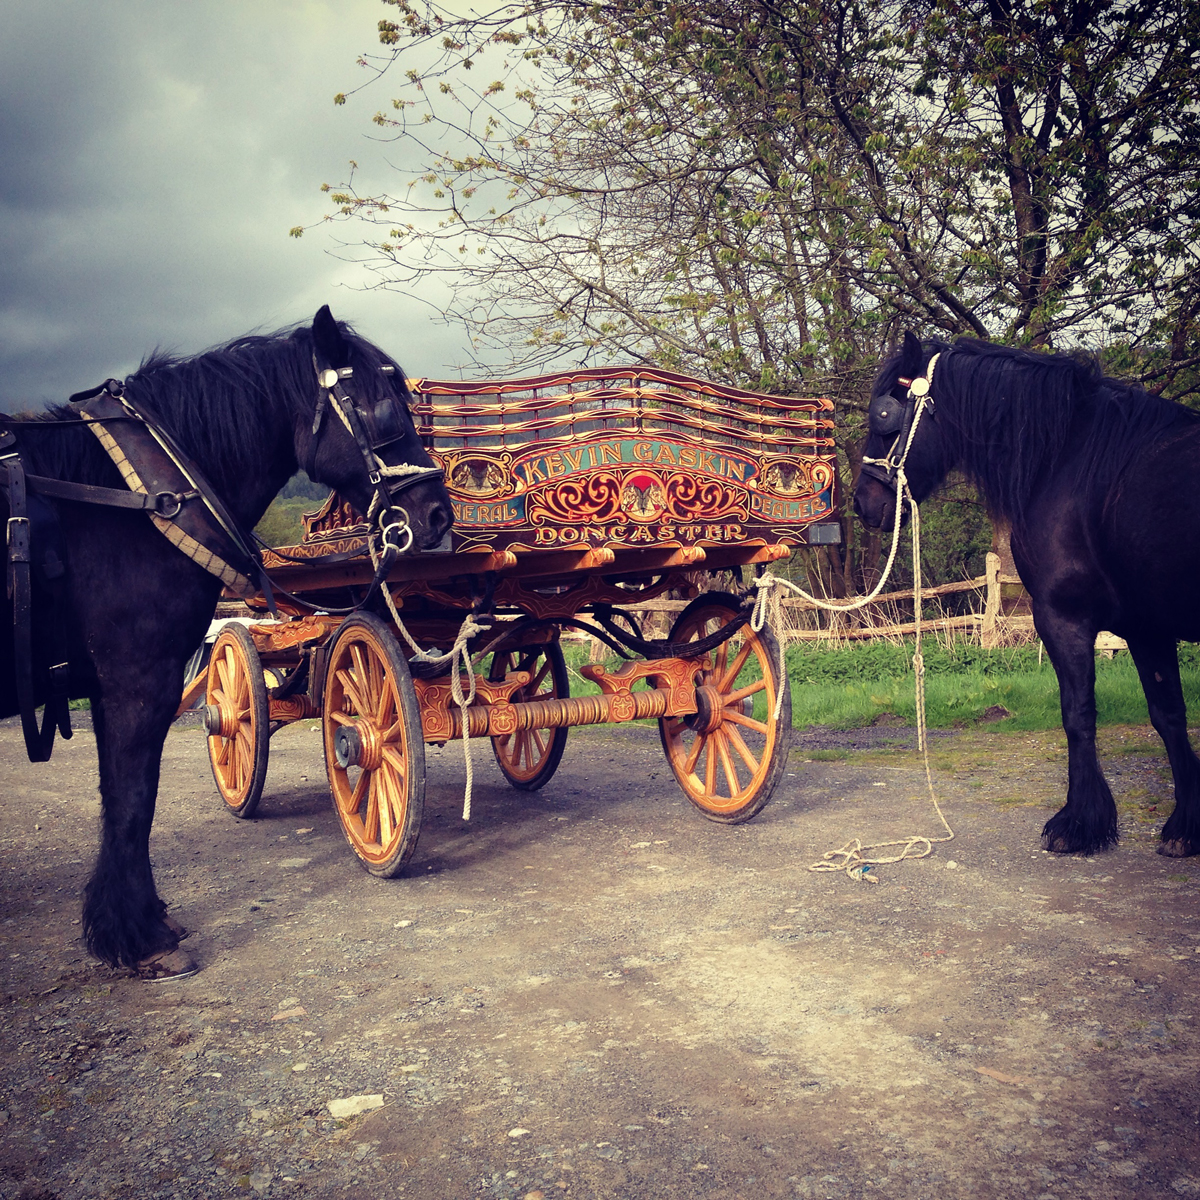 Hades Hill driving mares